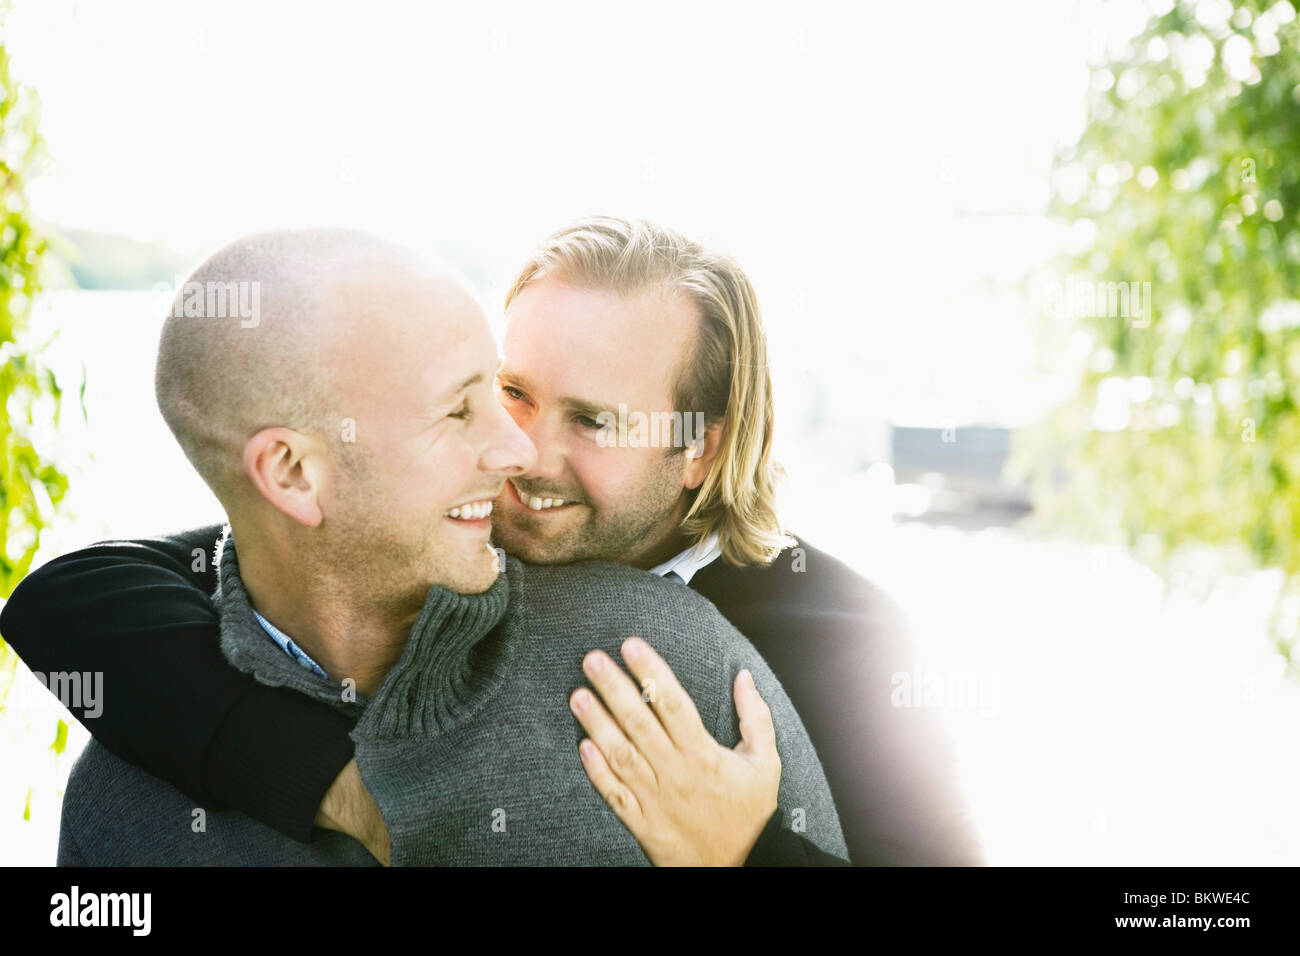 Two gay men holding each other Stock Photo: 29448732 - Alamy